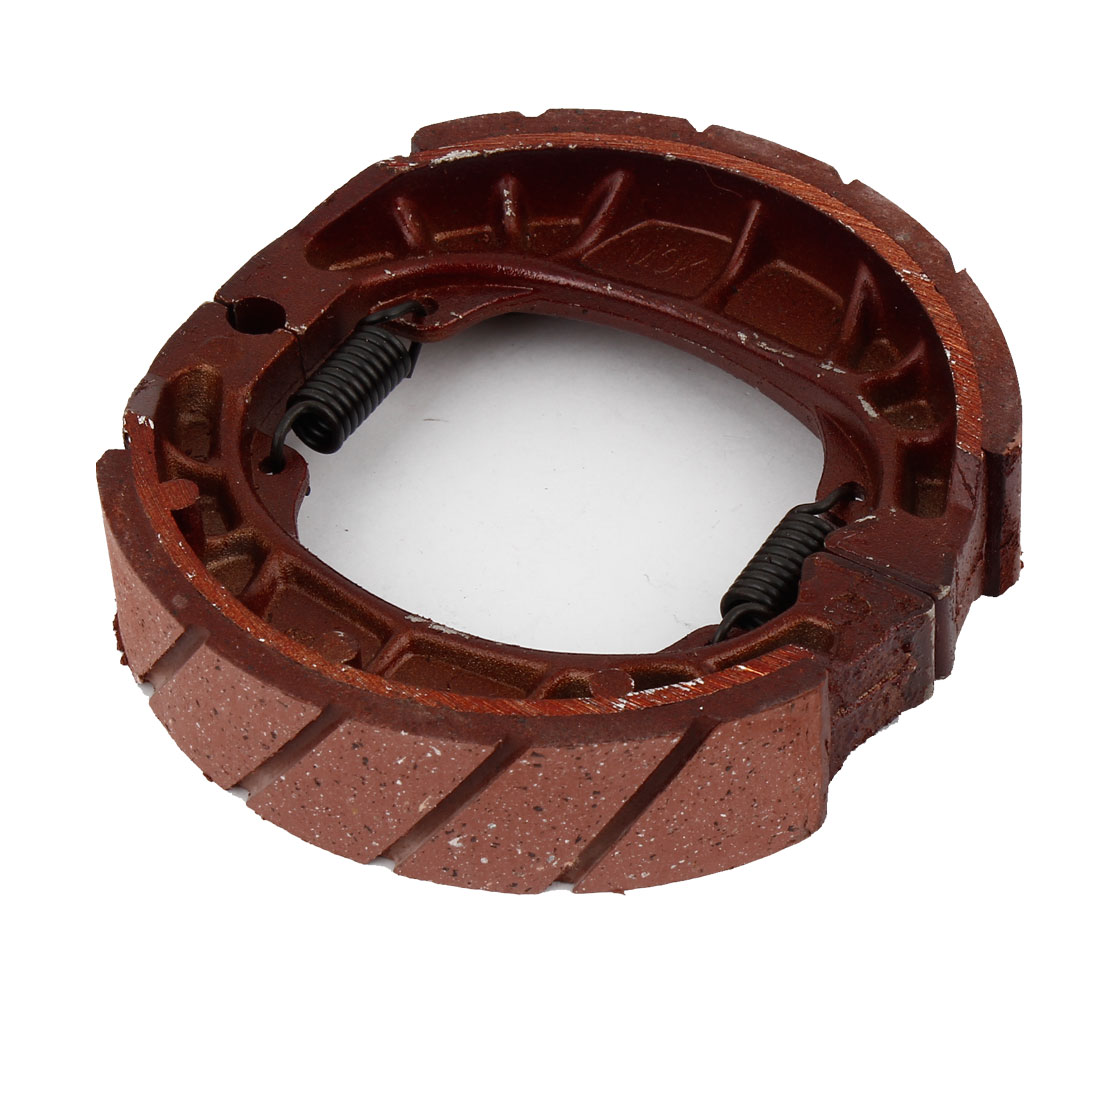 Motorcycle Motorbike PMetal Springs Brake Shoes Pad Brown for CG-125